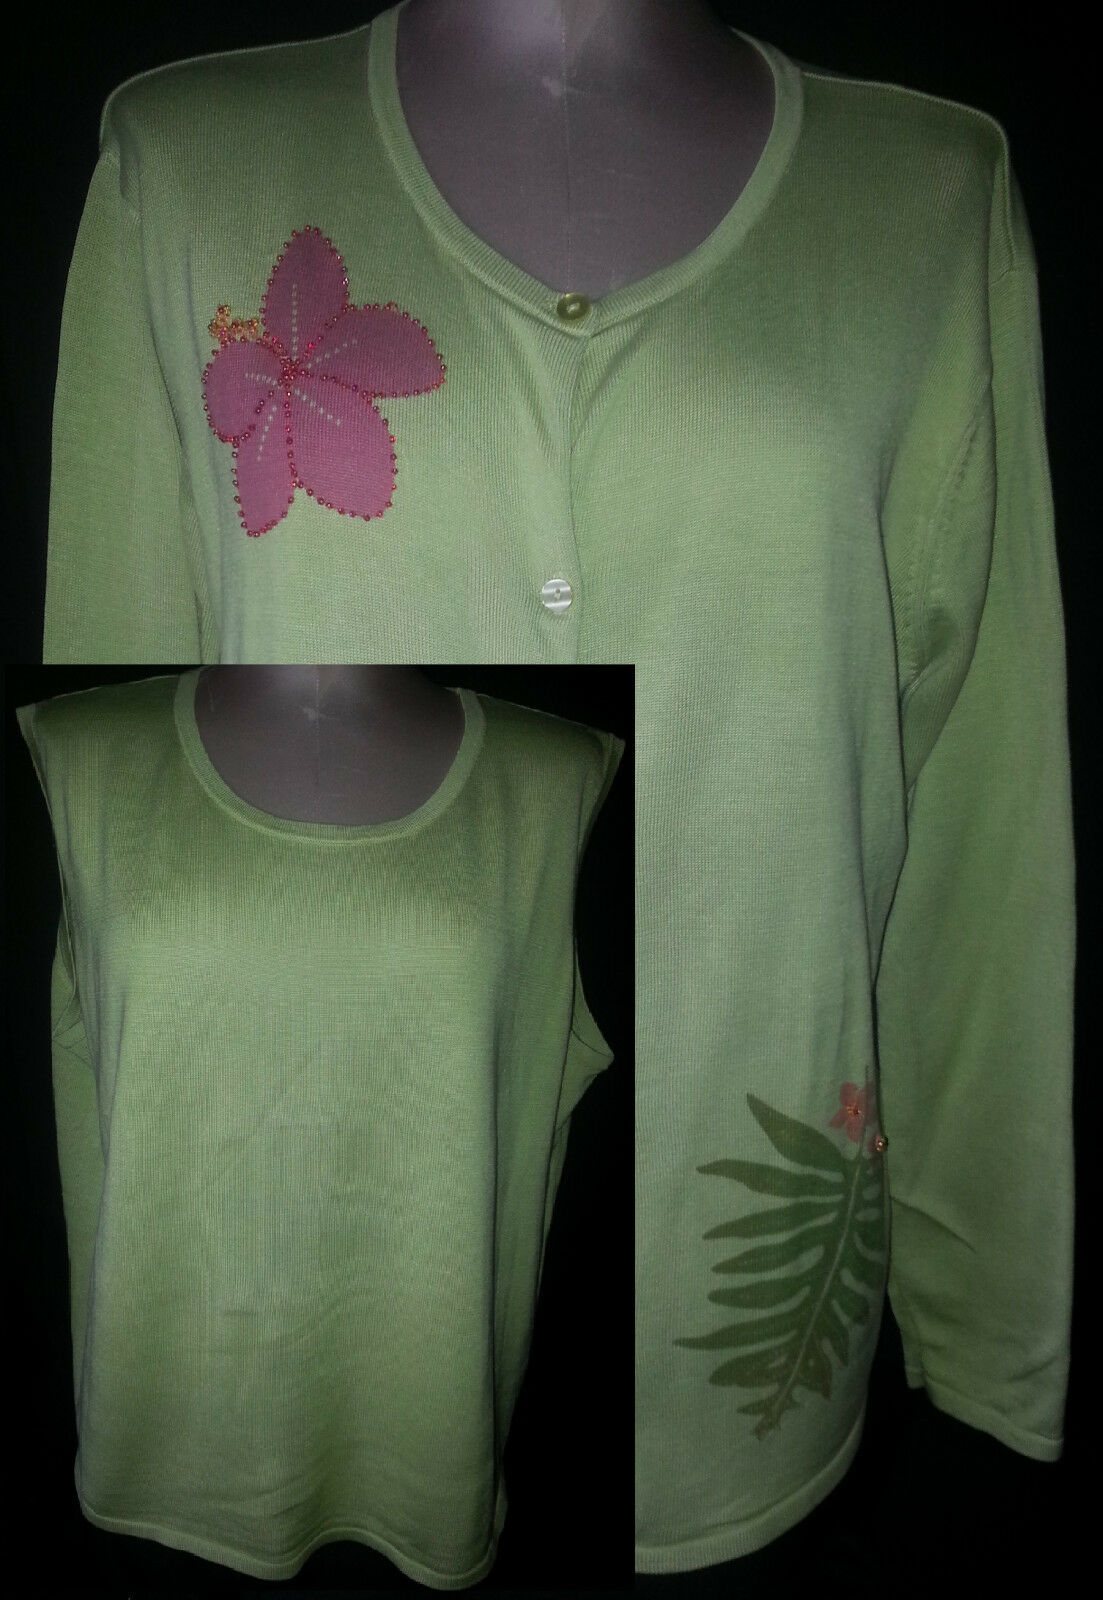 SILK CLUB Womens 2 Piece Cardigan Floral Sweater Blouse Size 2X Green